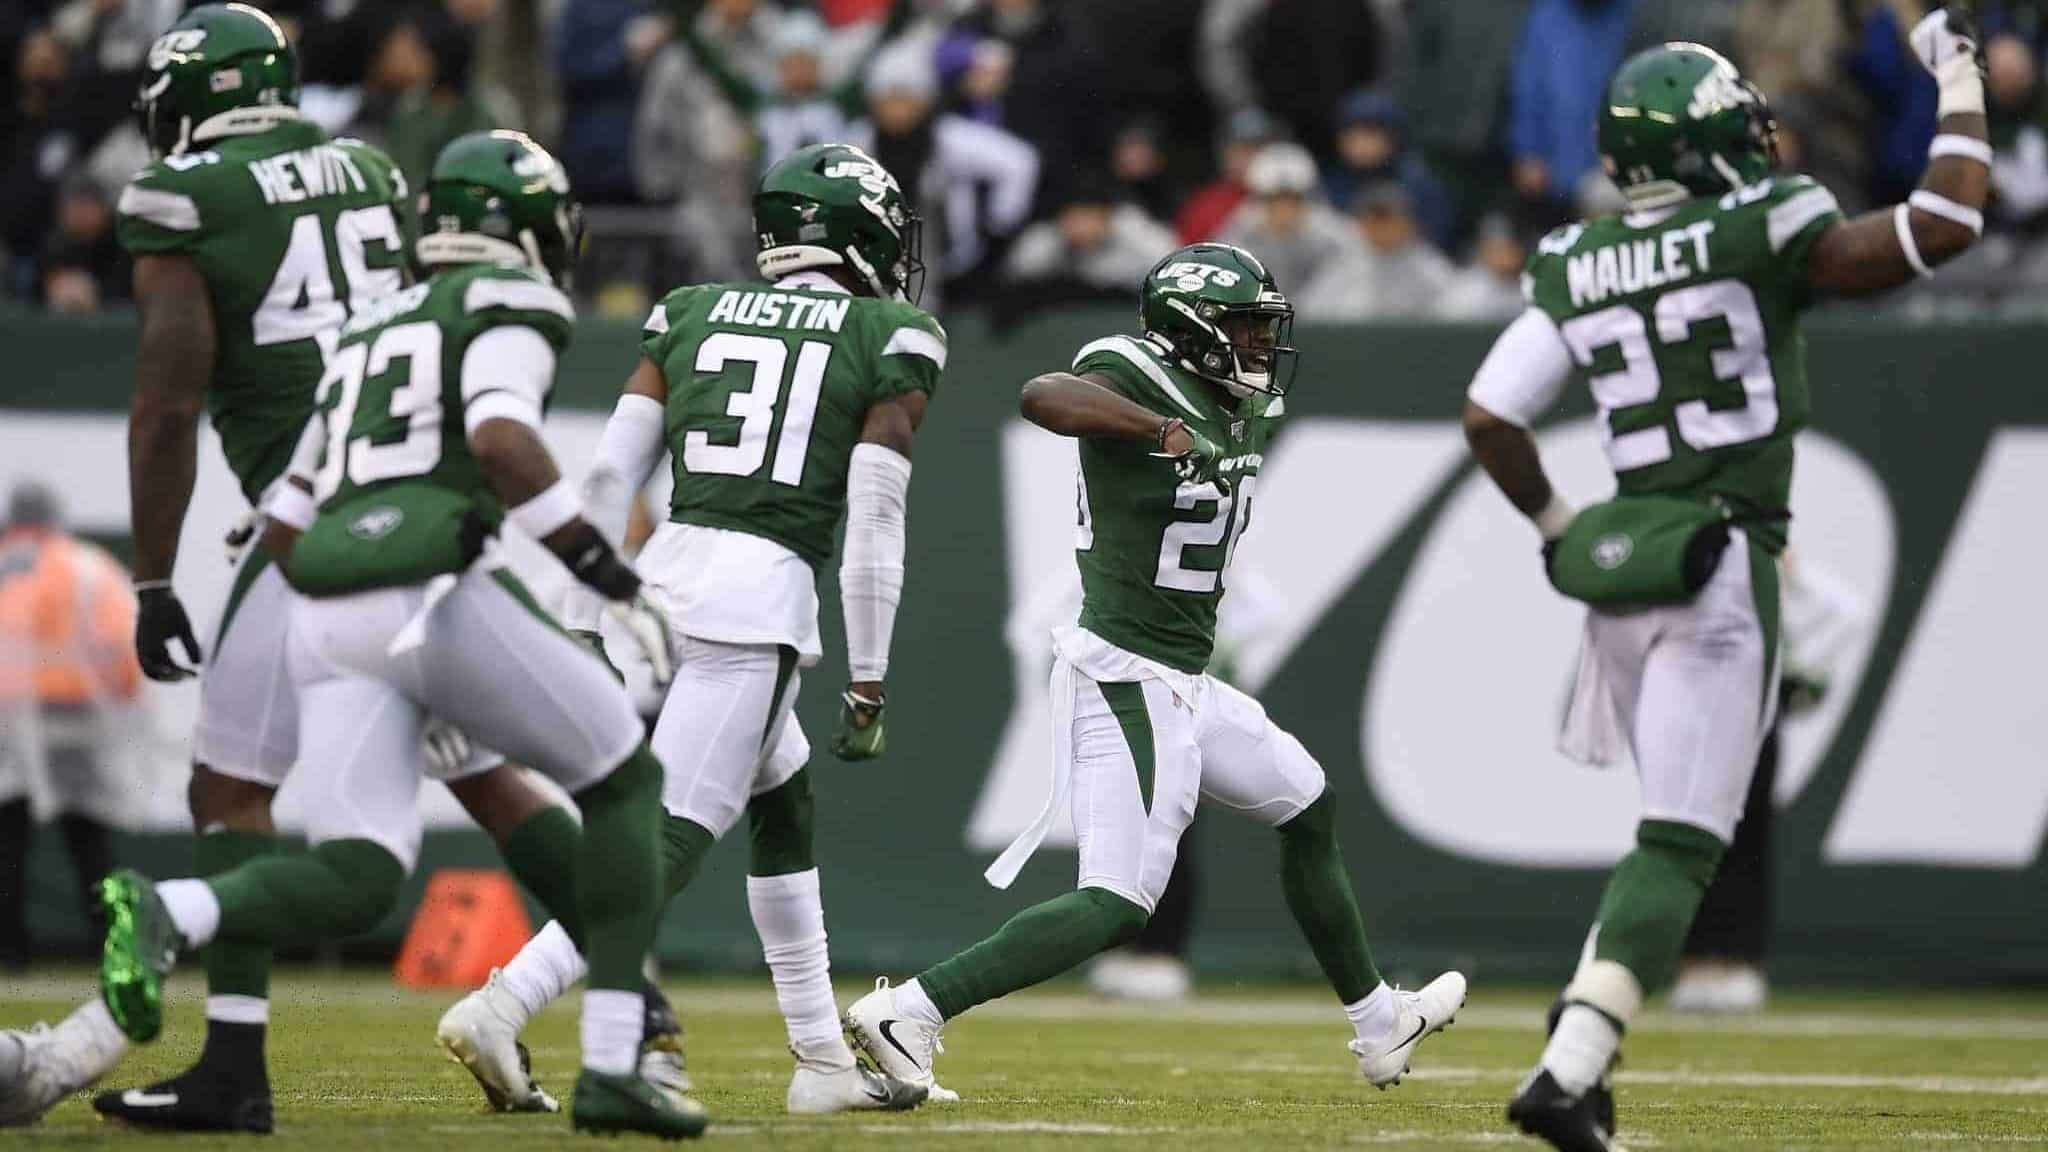 EAST RUTHERFORD, NEW JERSEY - NOVEMBER 24: Free safety Marcus Maye #20 of the New York Jets and his teammates react after stopping the Oakland Raiders one yard short of a first down during the second half of the game at MetLife Stadium on November 24, 2019 in East Rutherford, New Jersey.